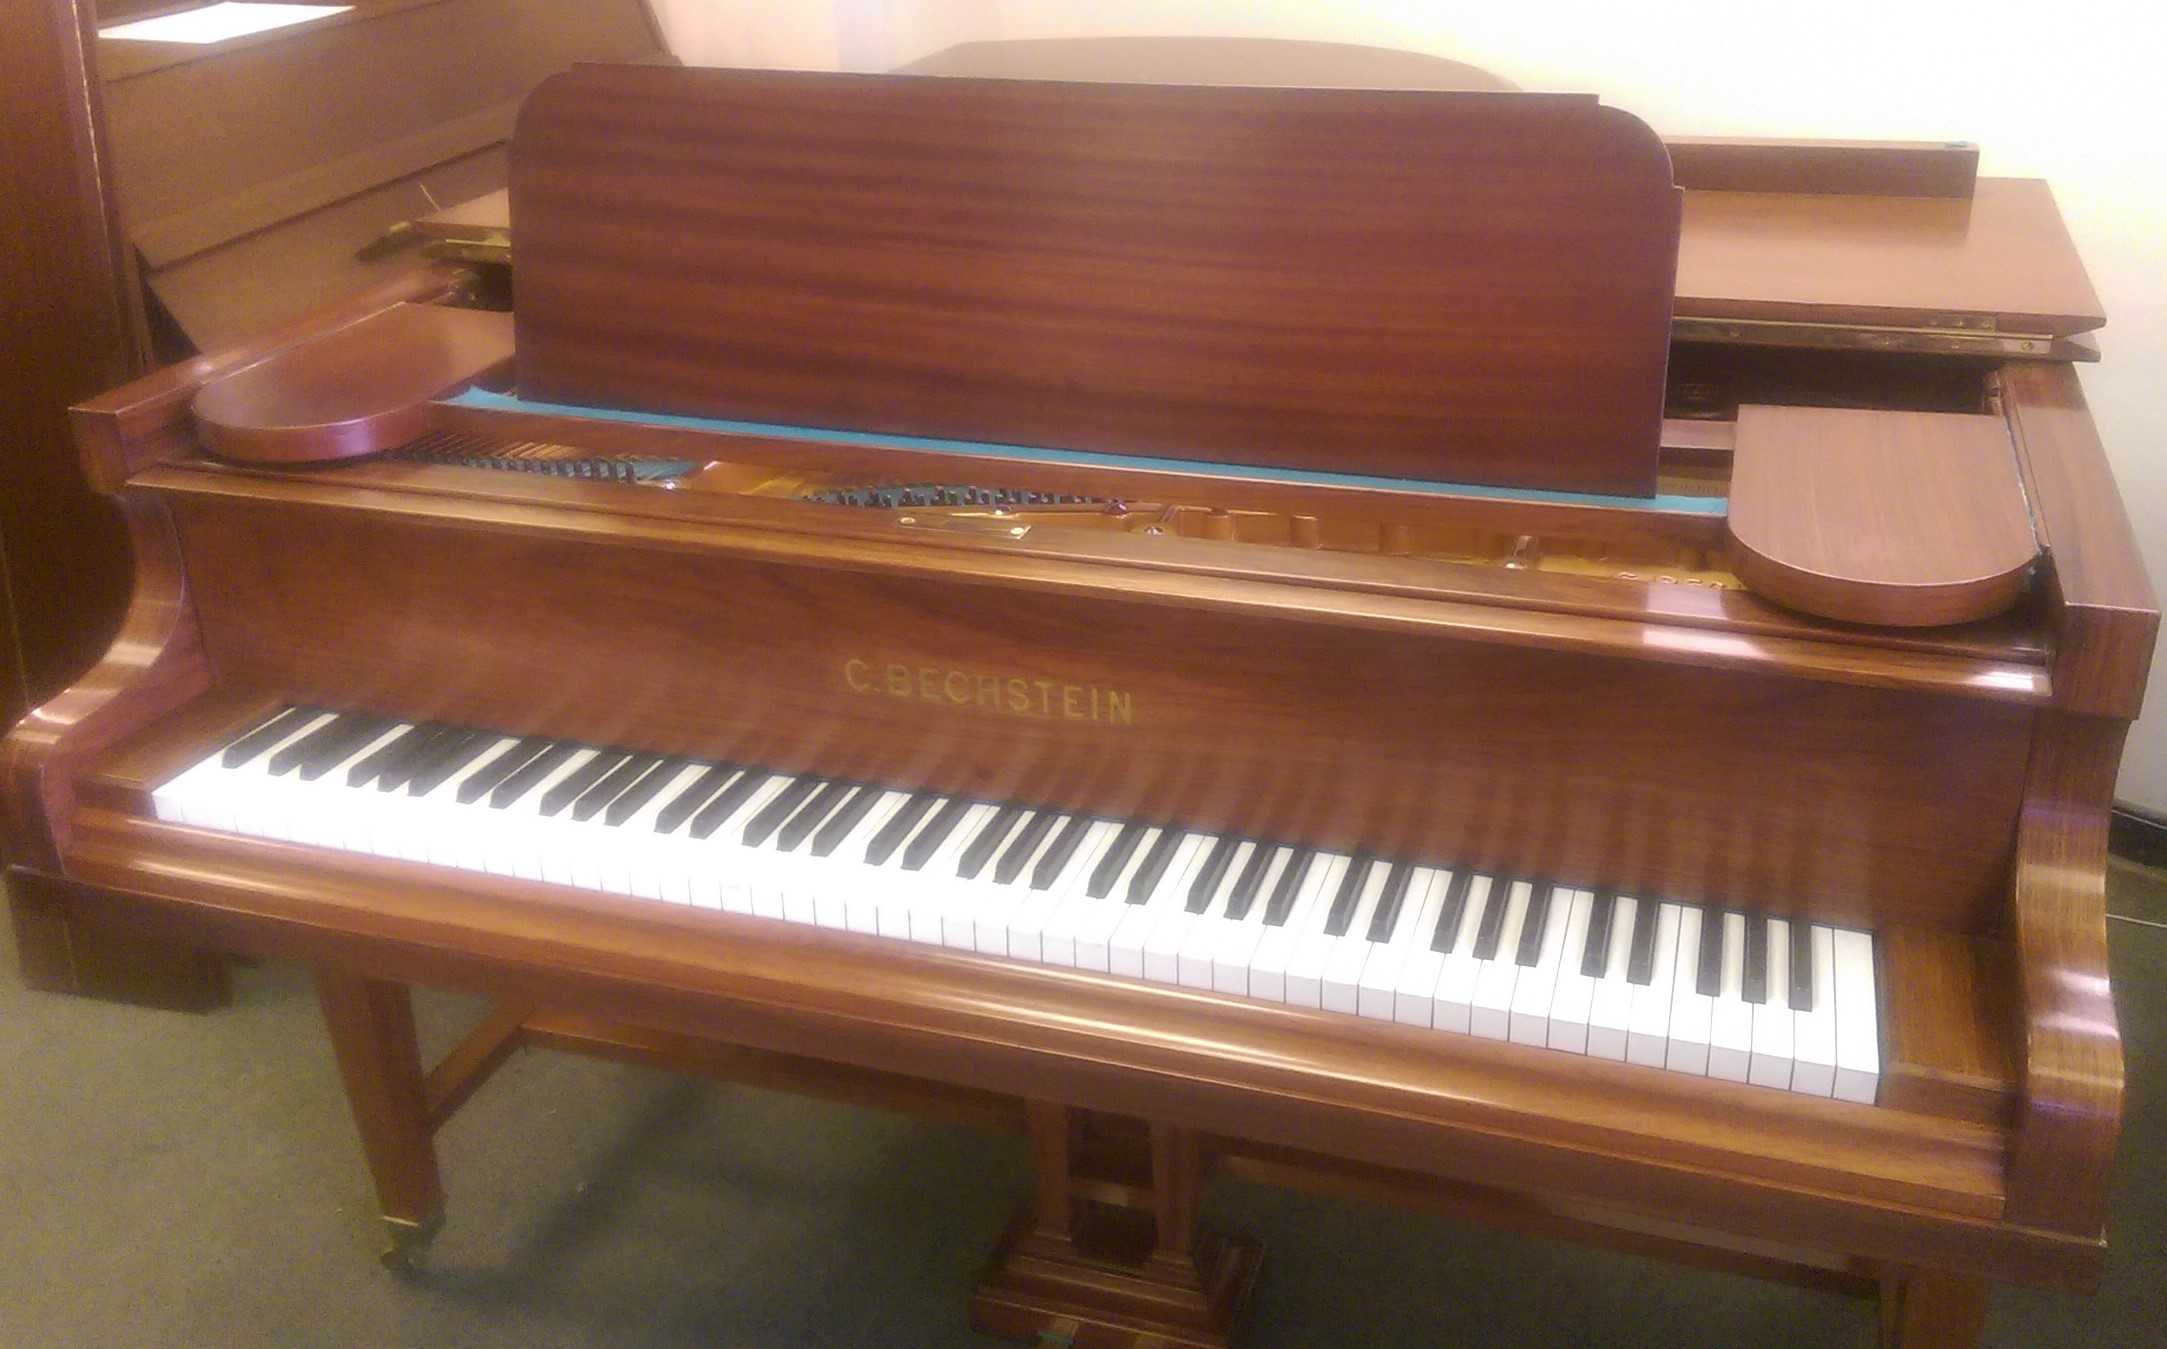 Bechstein Grand Piano Model B 68528